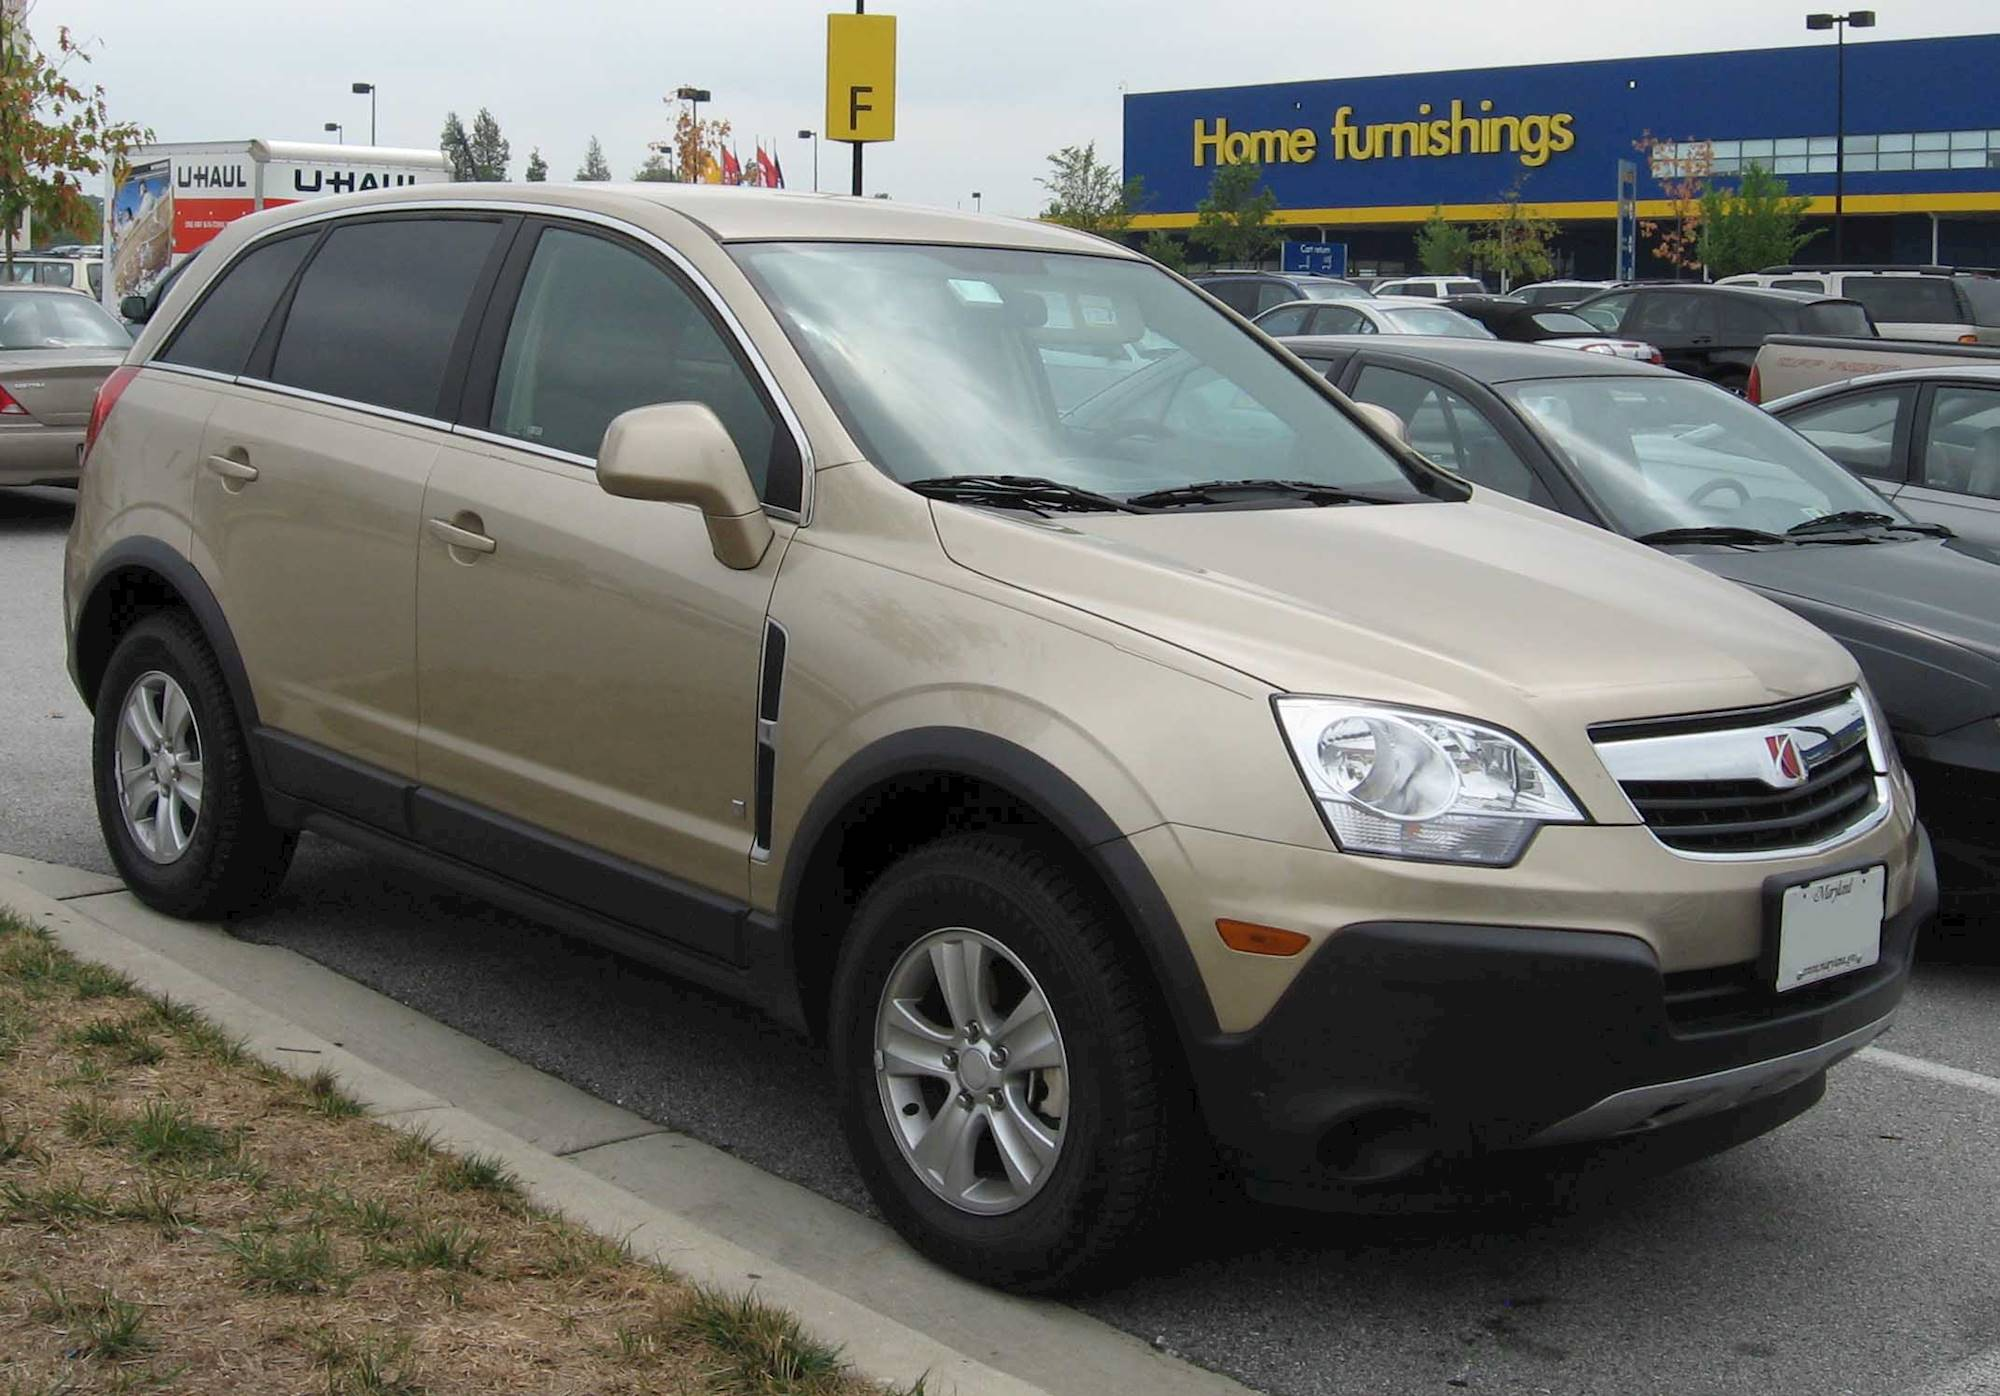 2008 Saturn Vue Xe >> 2008 Saturn VUE Red Line - 4dr SUV 3.6L V6 AWD auto